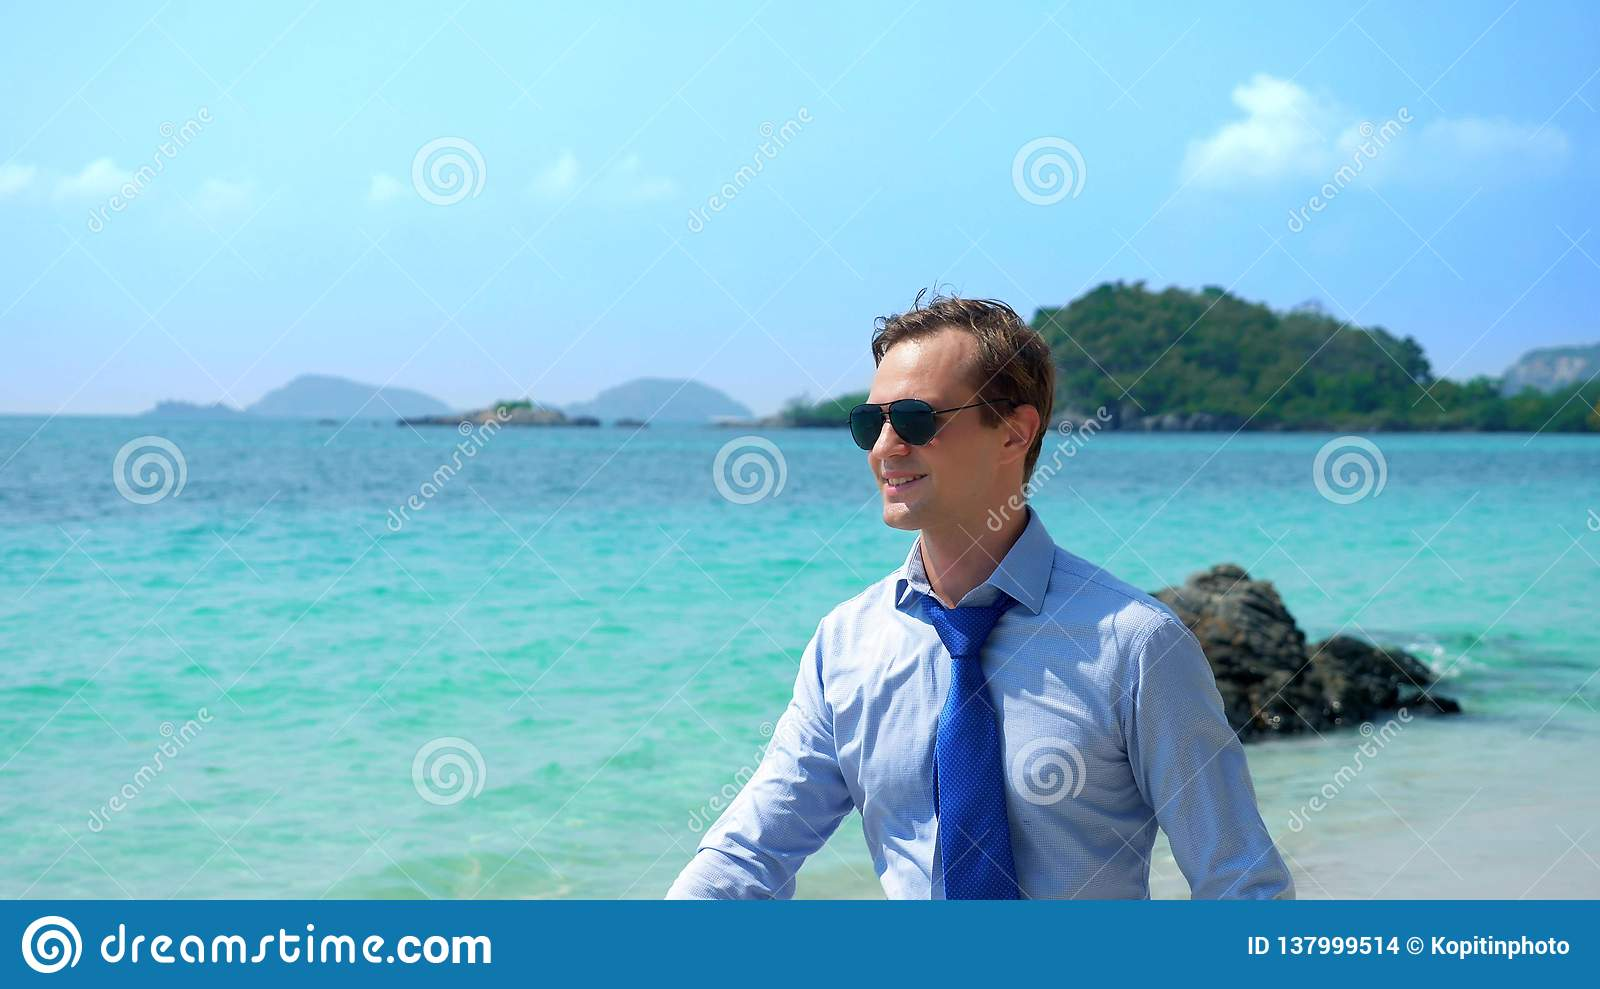 Handsome businessman in sunglasses walked along a tropical beach, taking off his tie